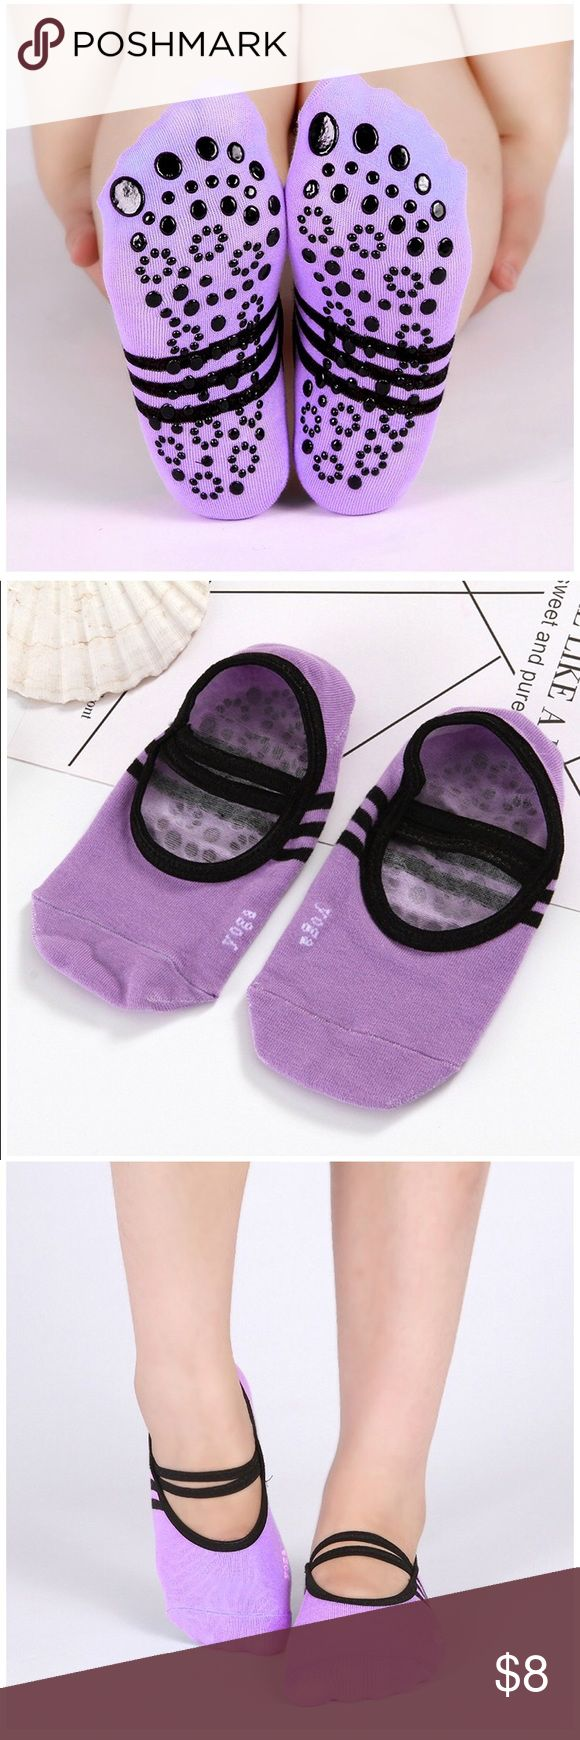 Non- slip women yoga Perfect for yoga, Pilates and ballet. 💯 % cotton Accessories Hosiery & Socks